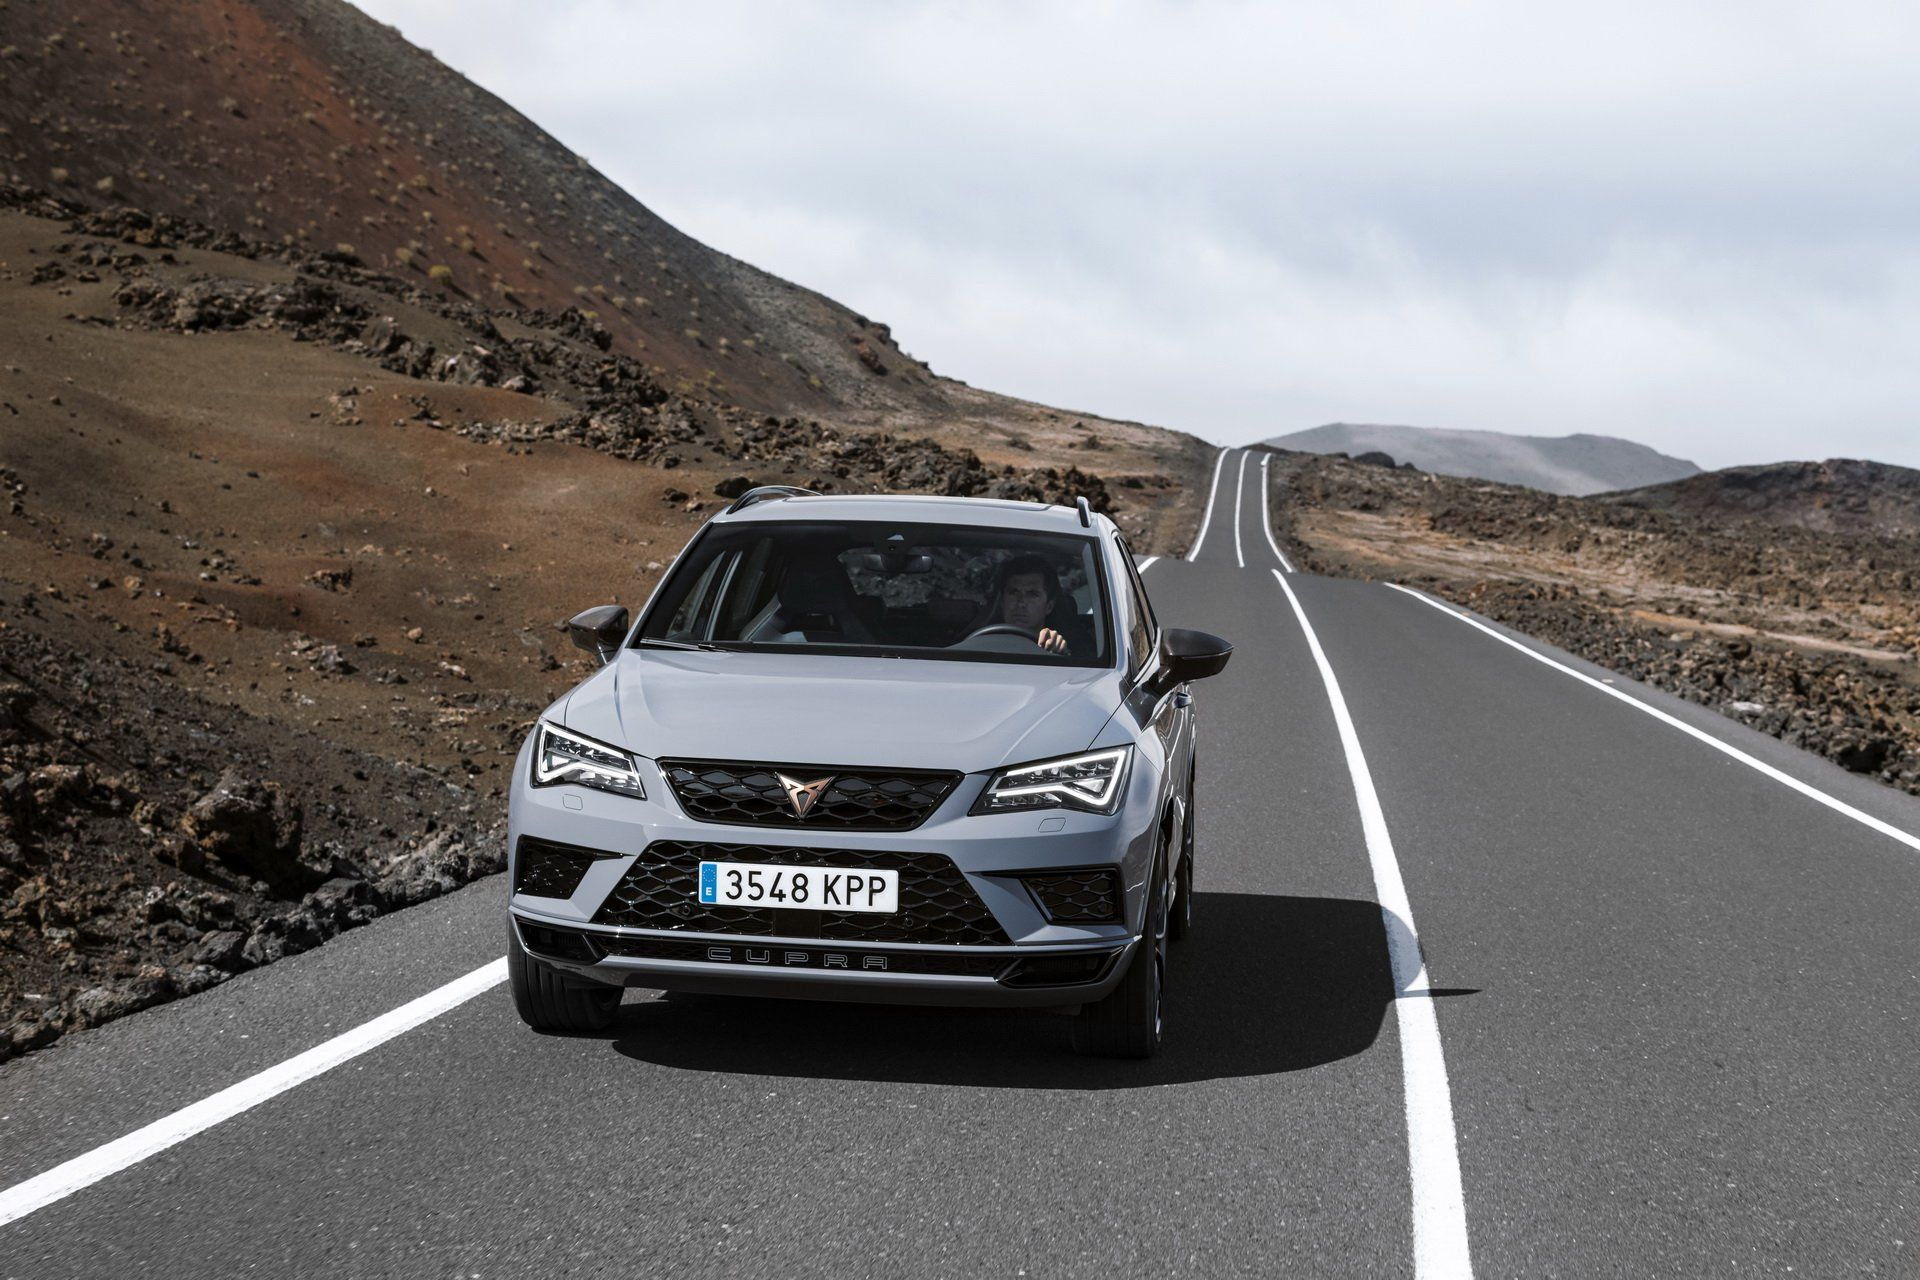 Cupra-Ateca-Limited-Edition-37